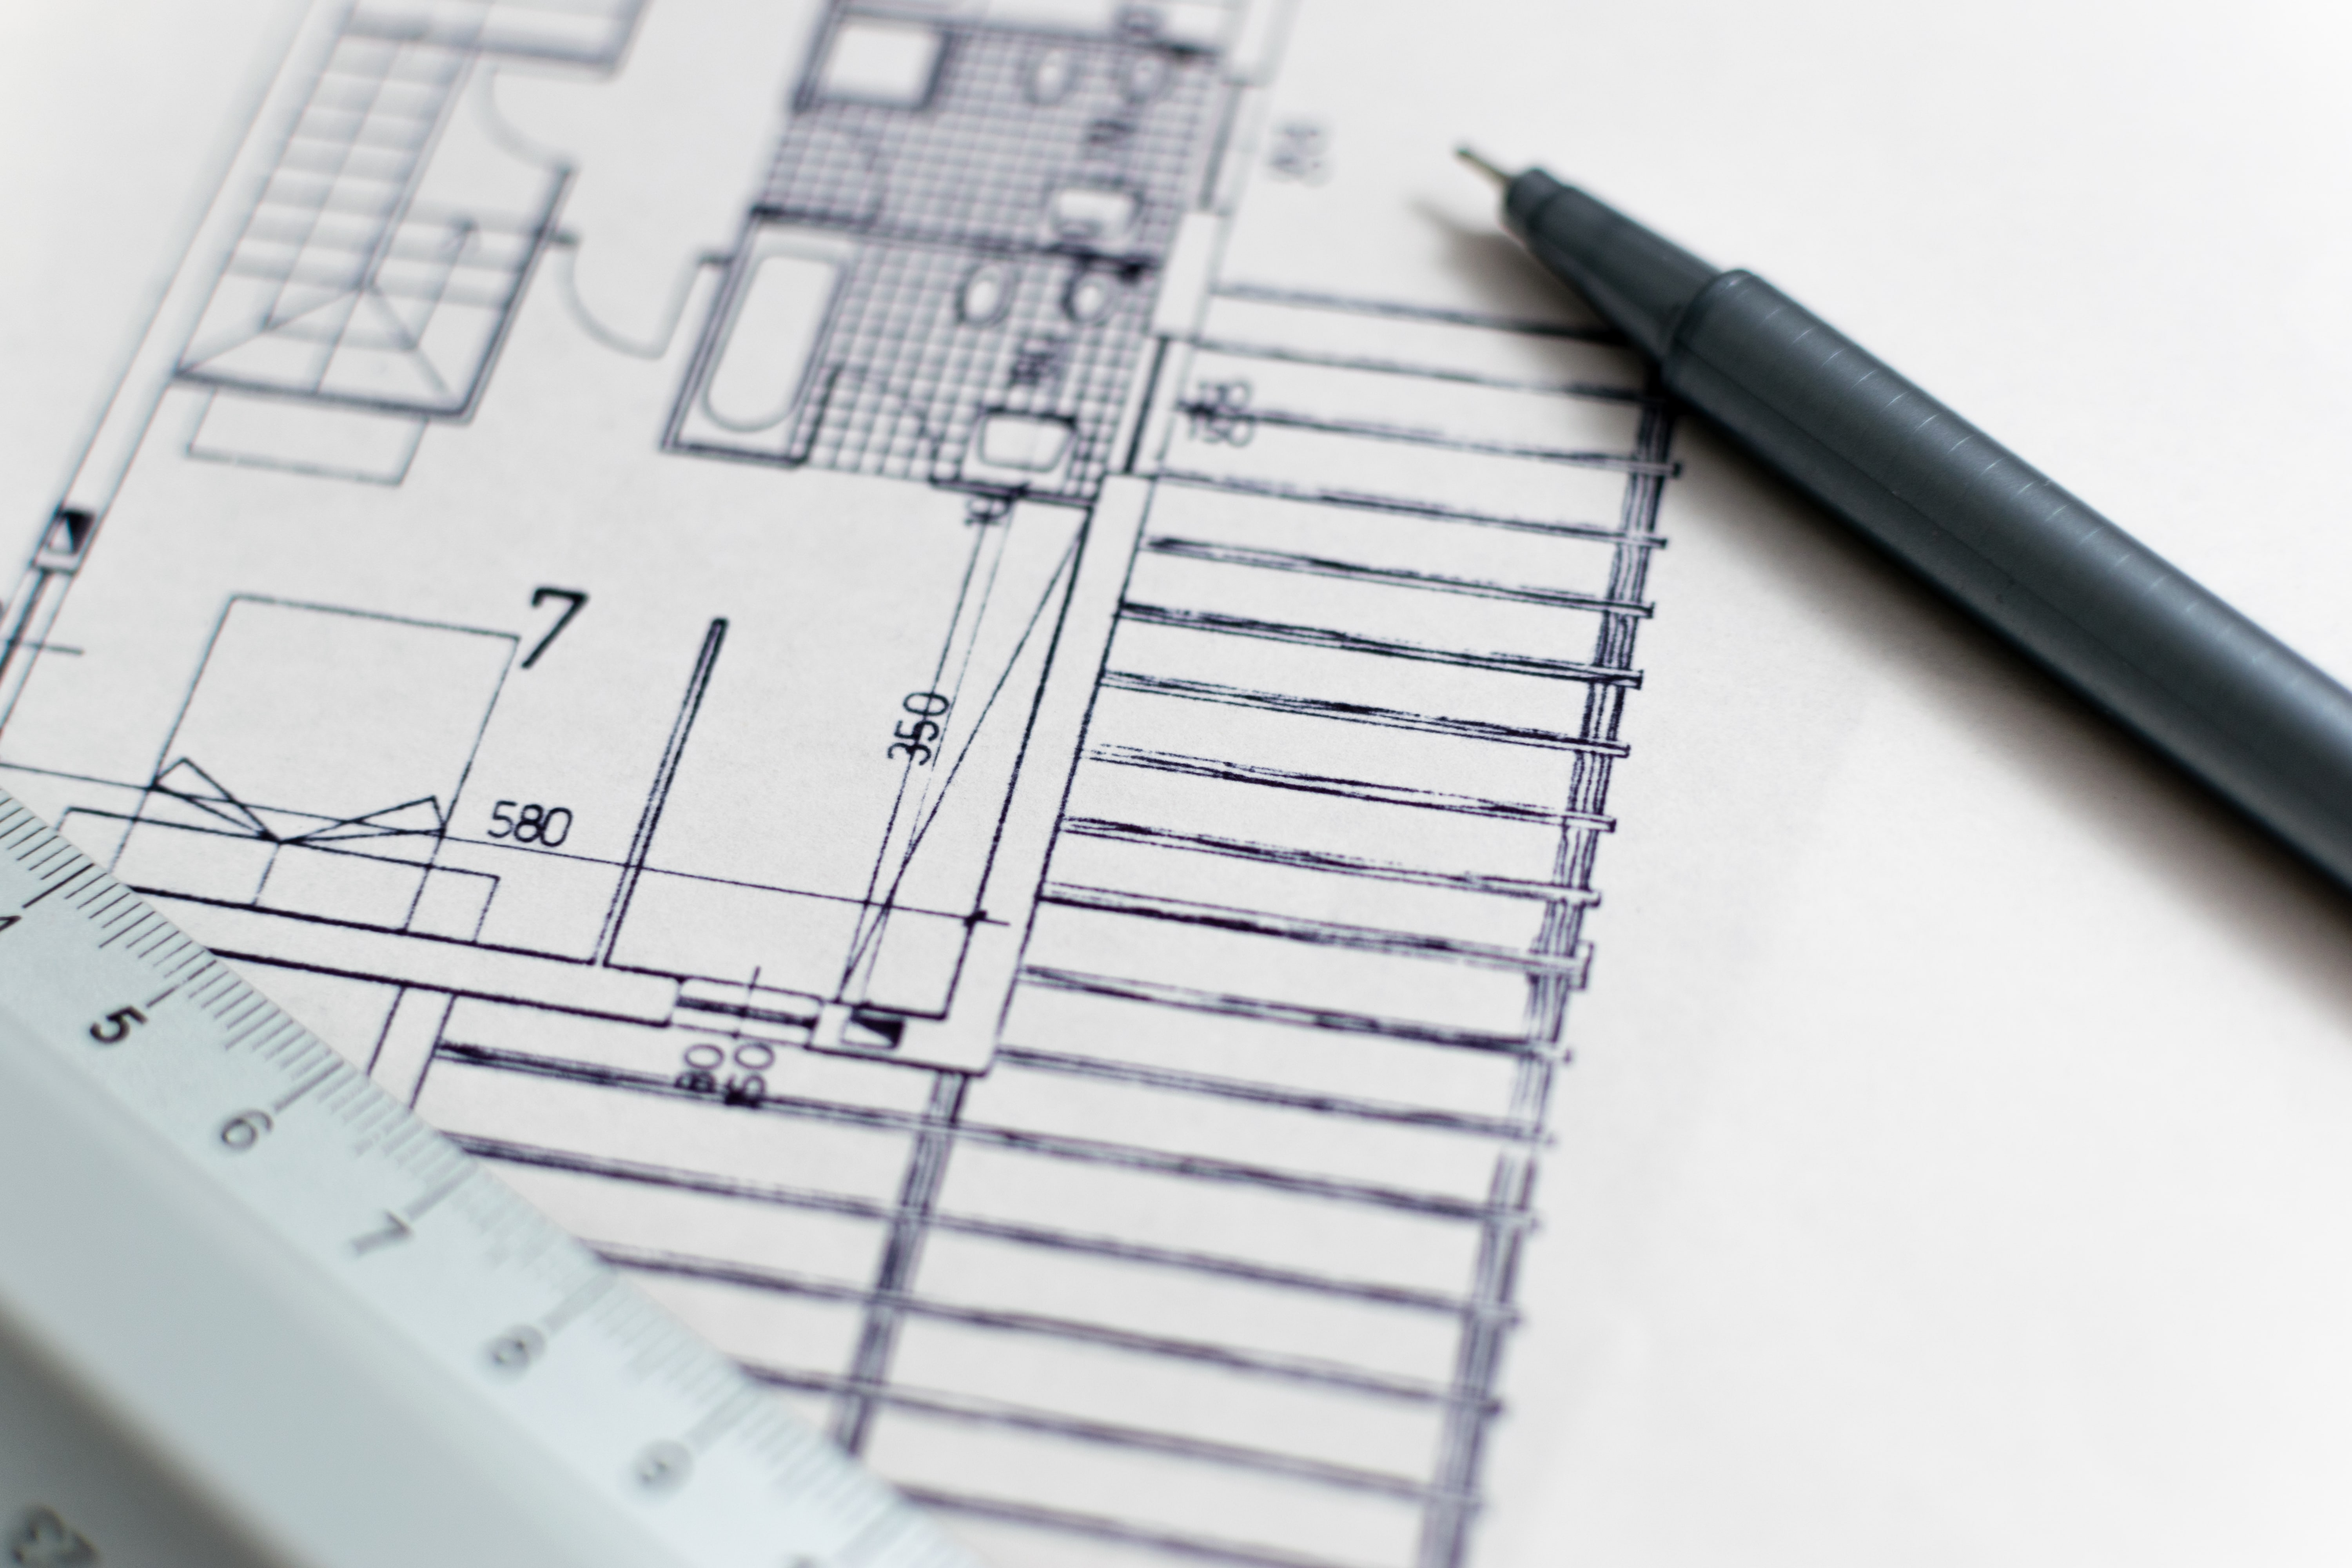 re blueprint with pen and ruler